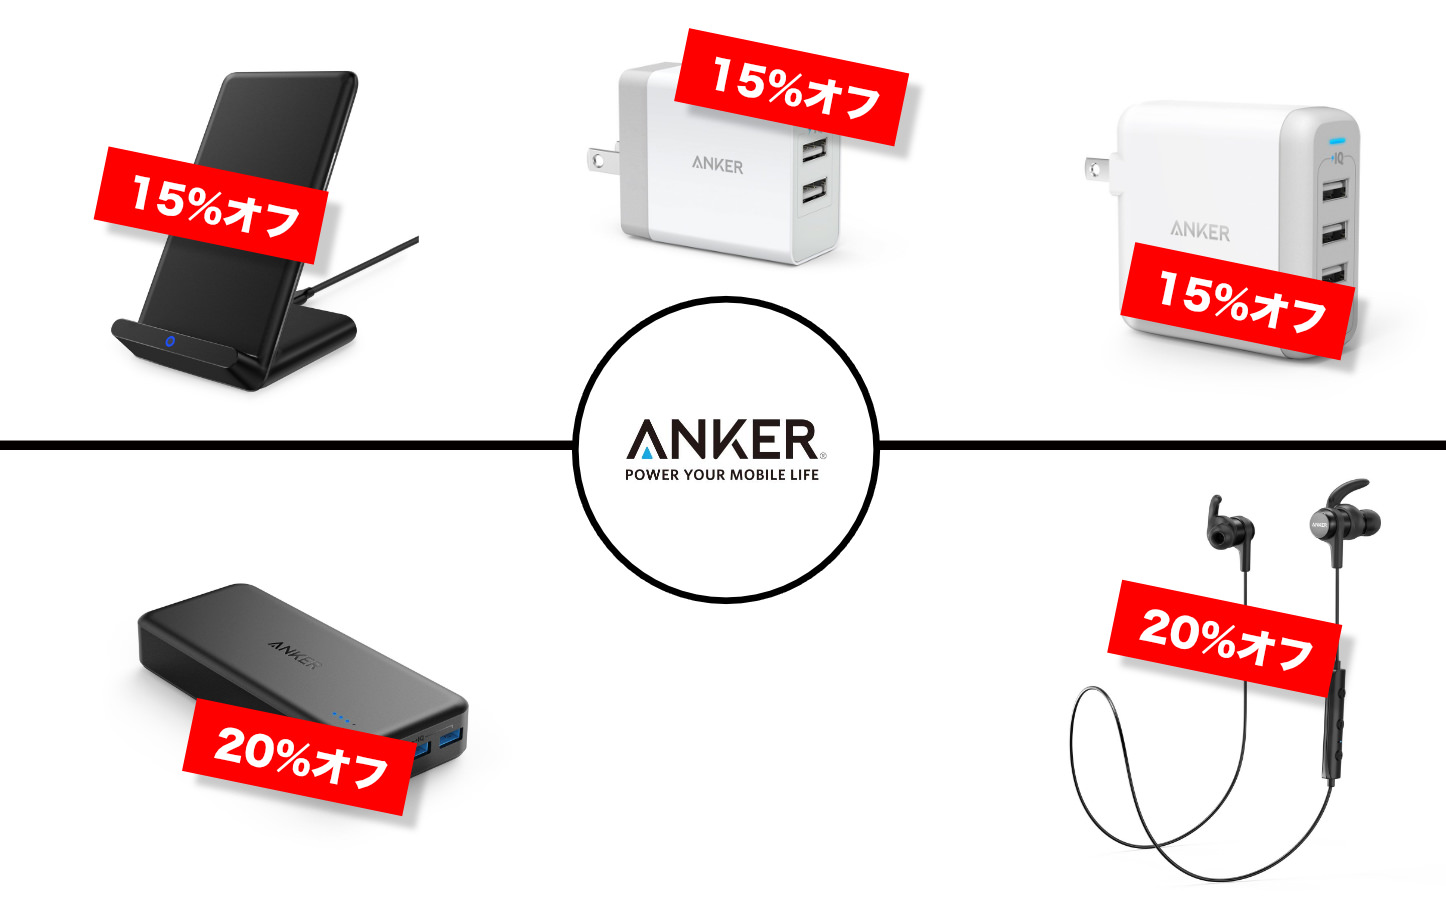 Anker Time Sale 20180520